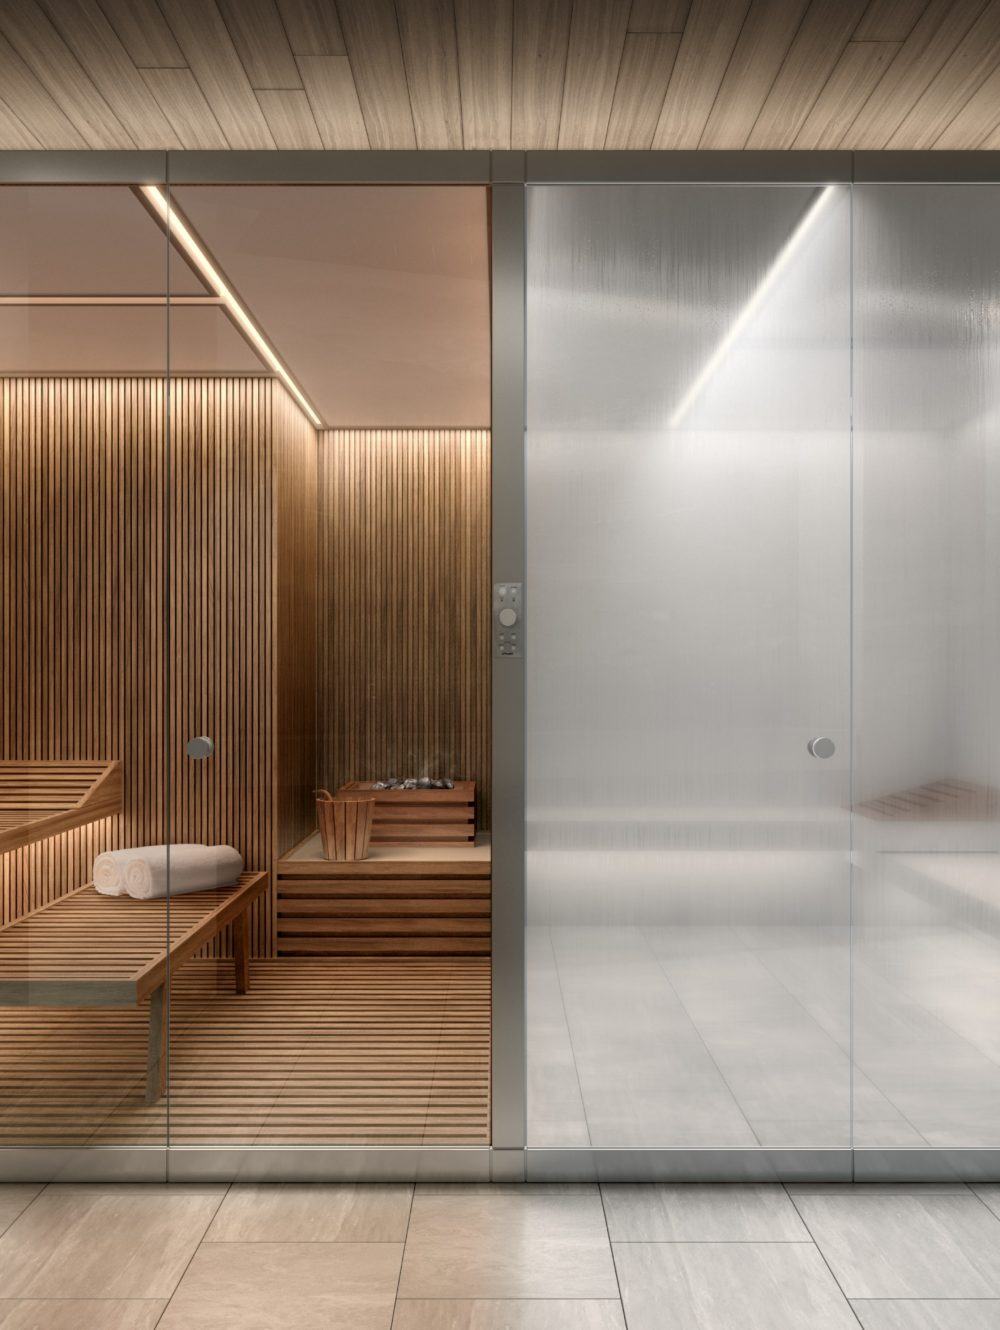 Sauna & steam rooms at The Xi luxury condos in NYC. Square room divided in half, one with wood benches and the other stone.